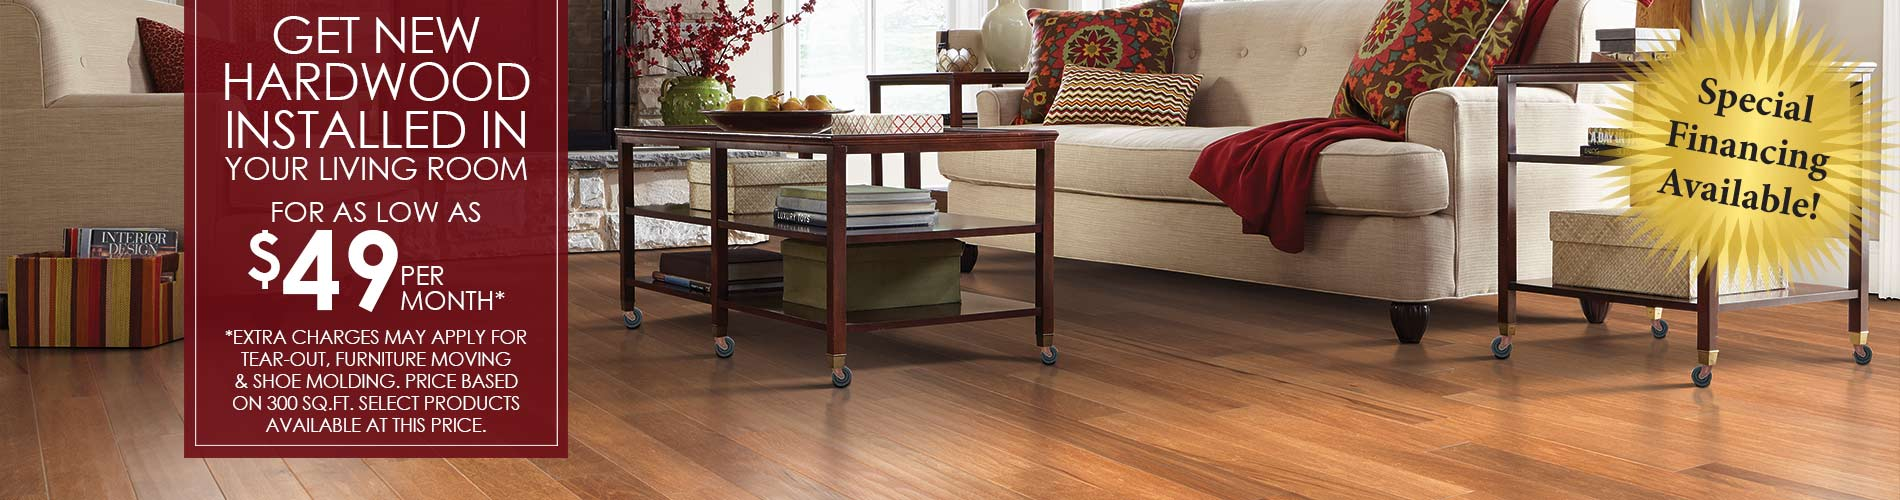 Get new hardwood installed in your living room for as low as $49 per month! Come visit our showroom in Clarksville, Tennessee to see all the amazing choices!